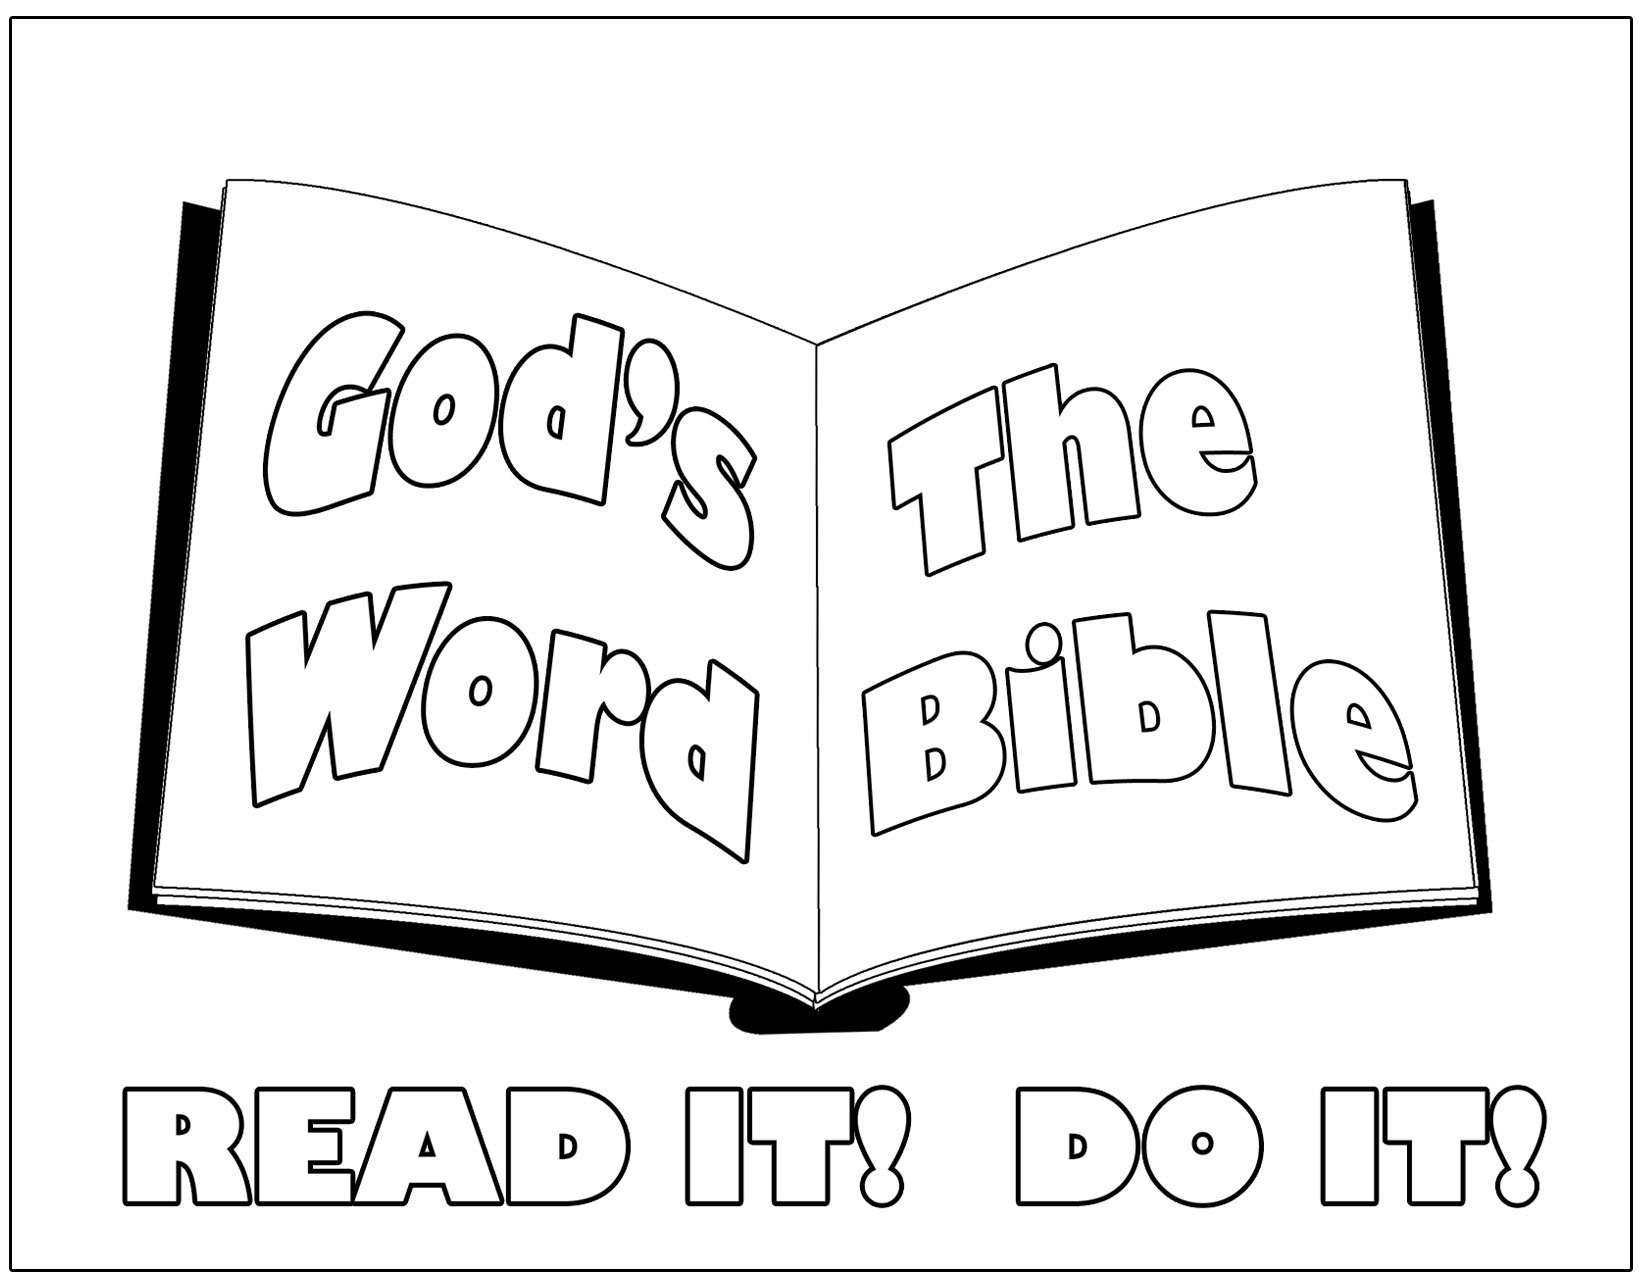 Free Bible Coloring Pages Stunning Free Printable Bible Coloring Pages For Kids Inspiration